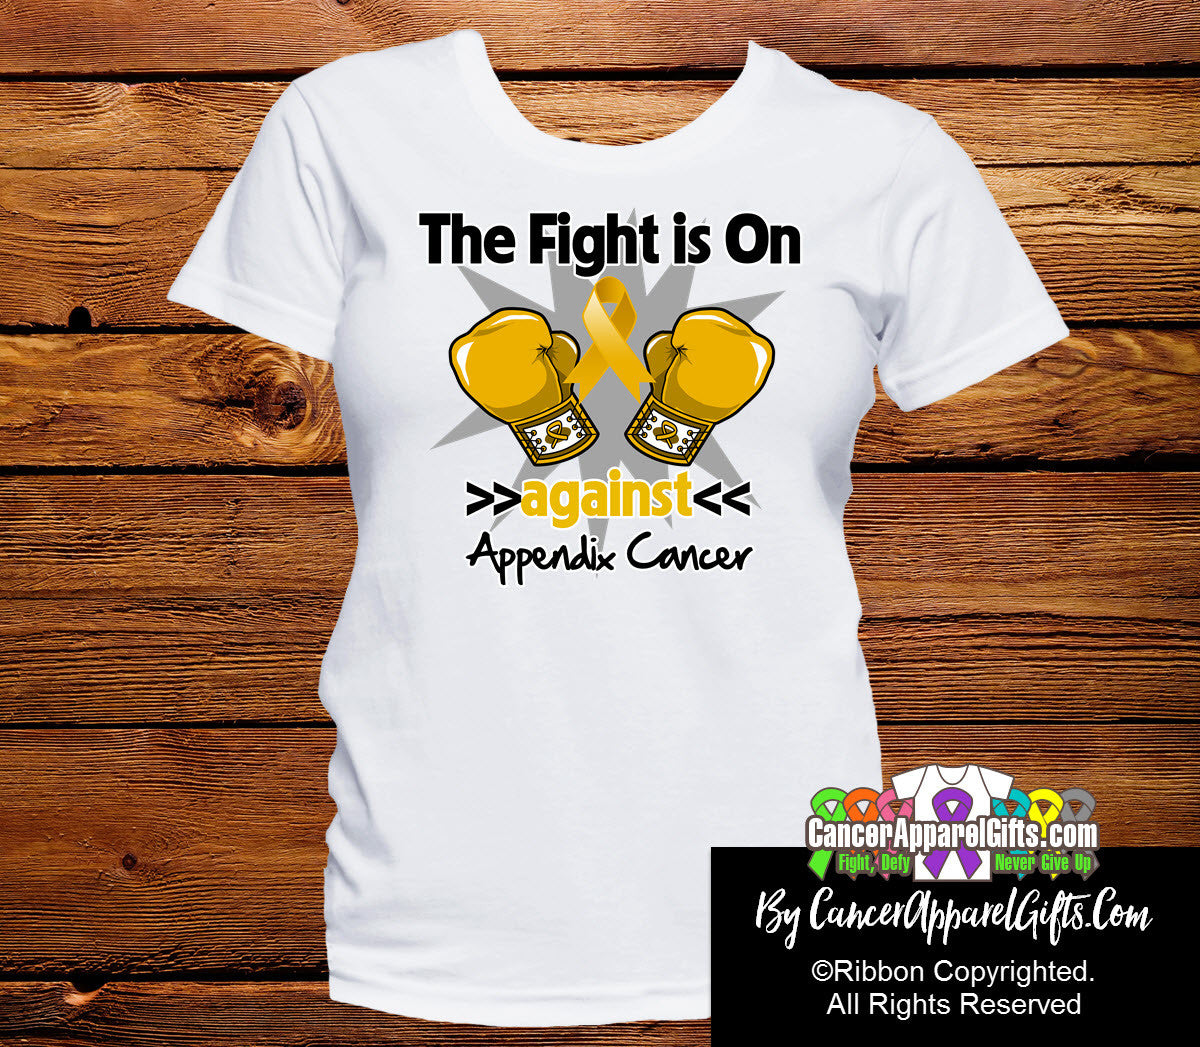 Appendix Cancer The Fight is On Ladies Shirts